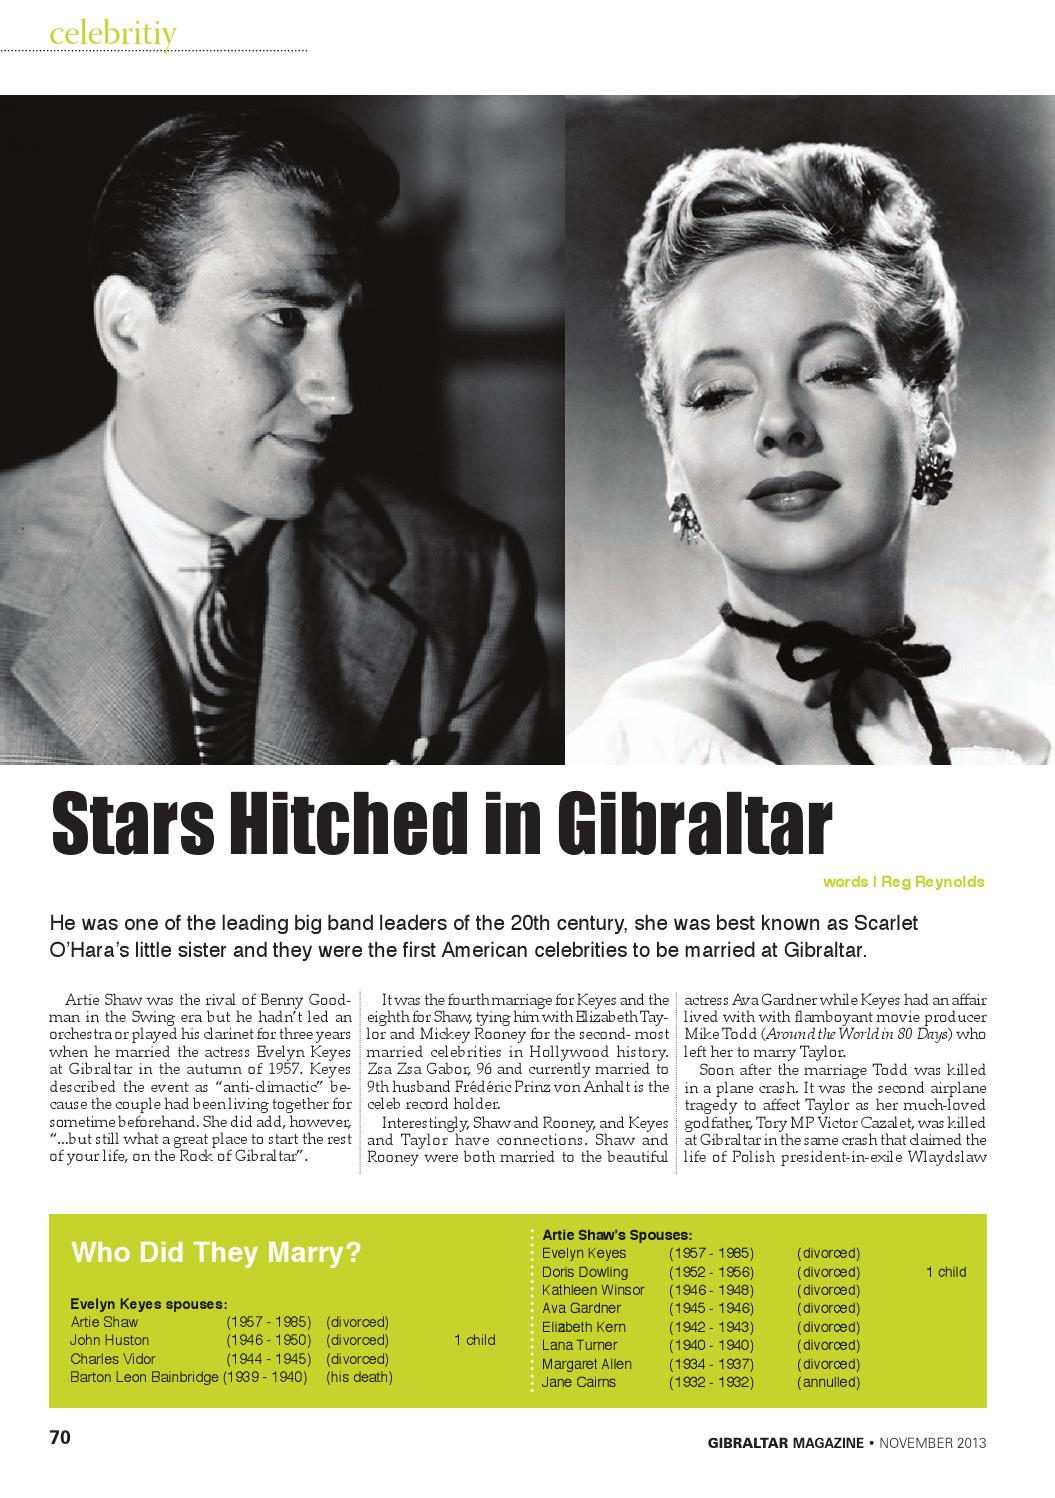 Artie Shaw Marriages Gibraltar Magazine November 2013